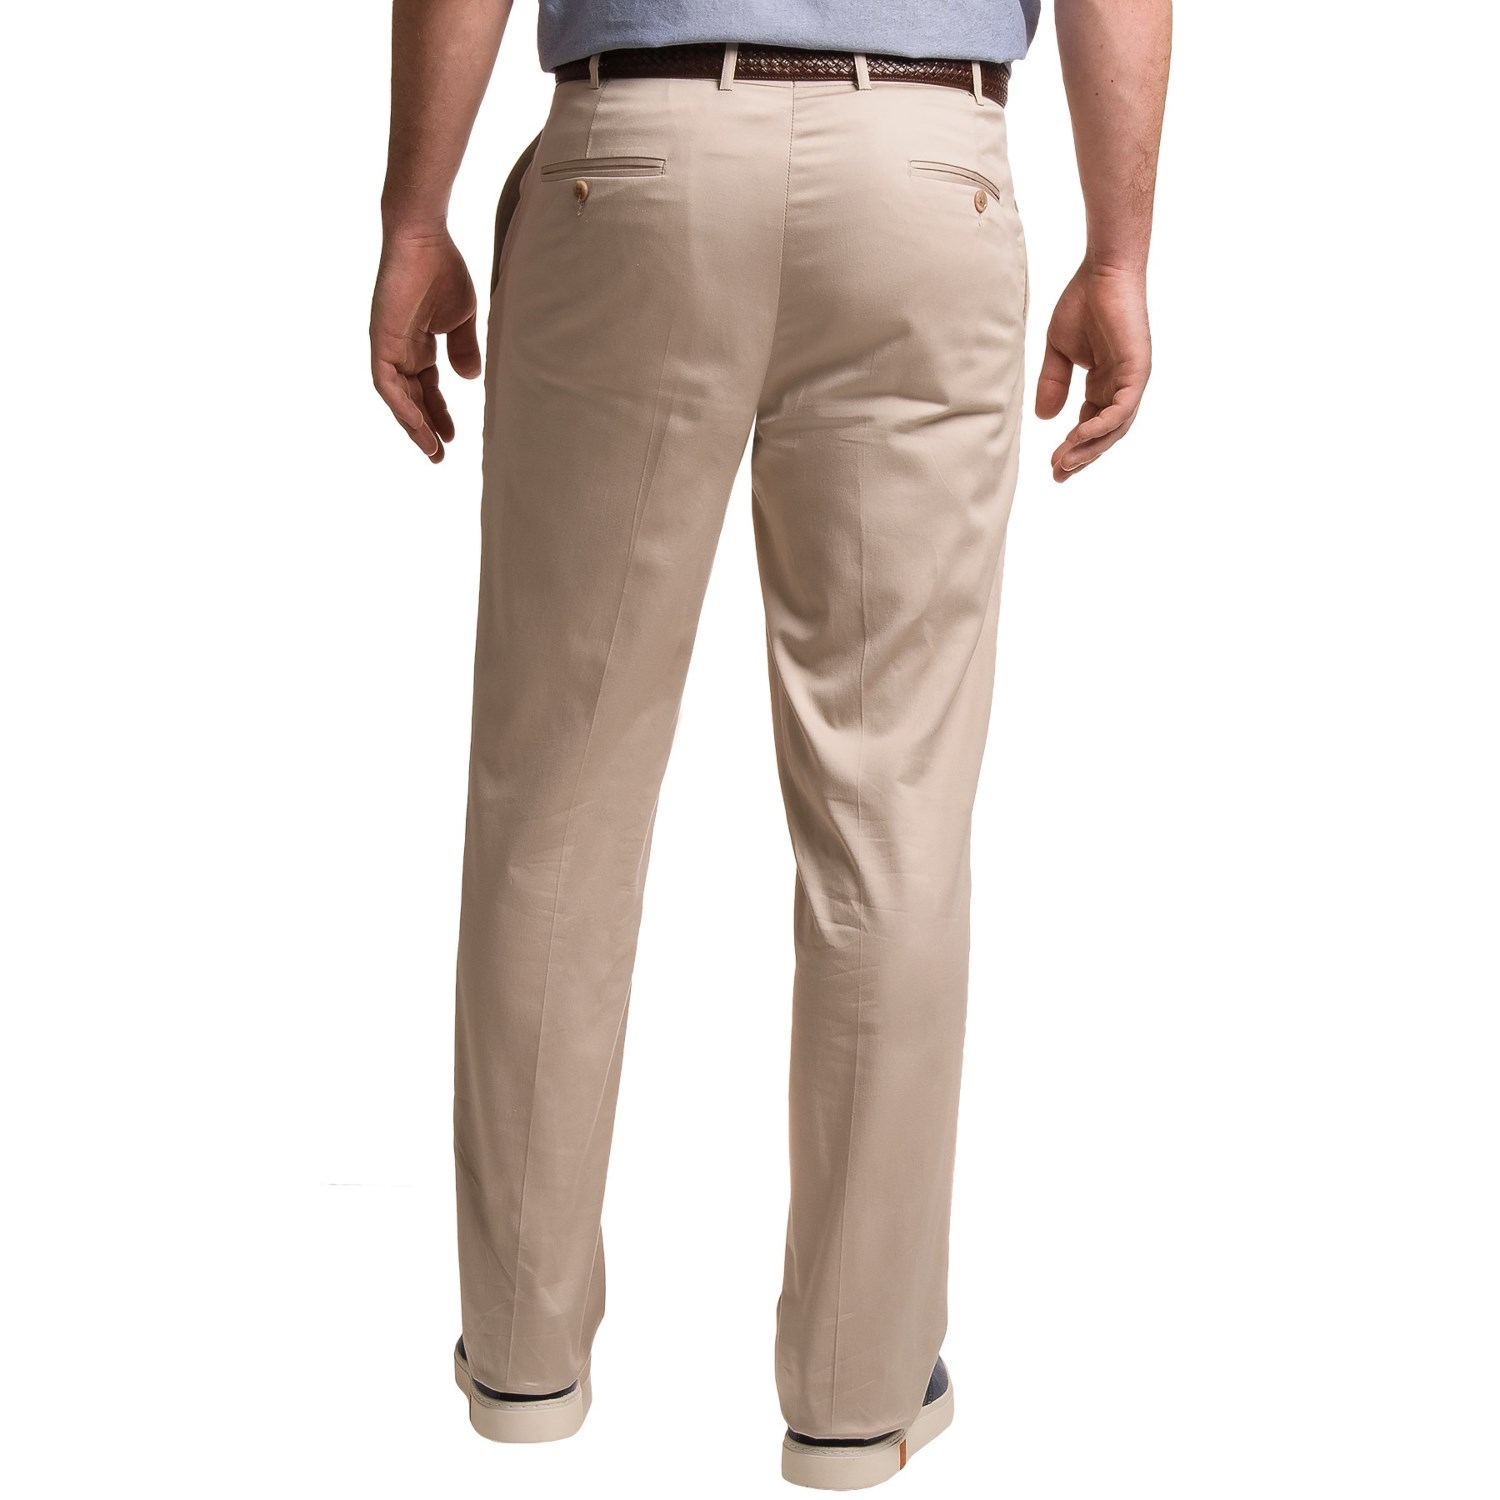 Free shipping on men's dress pants at teraisompcz8d.ga Shop flat-front & pleated pants in cotton, wool & more. Totally free shipping & returns.